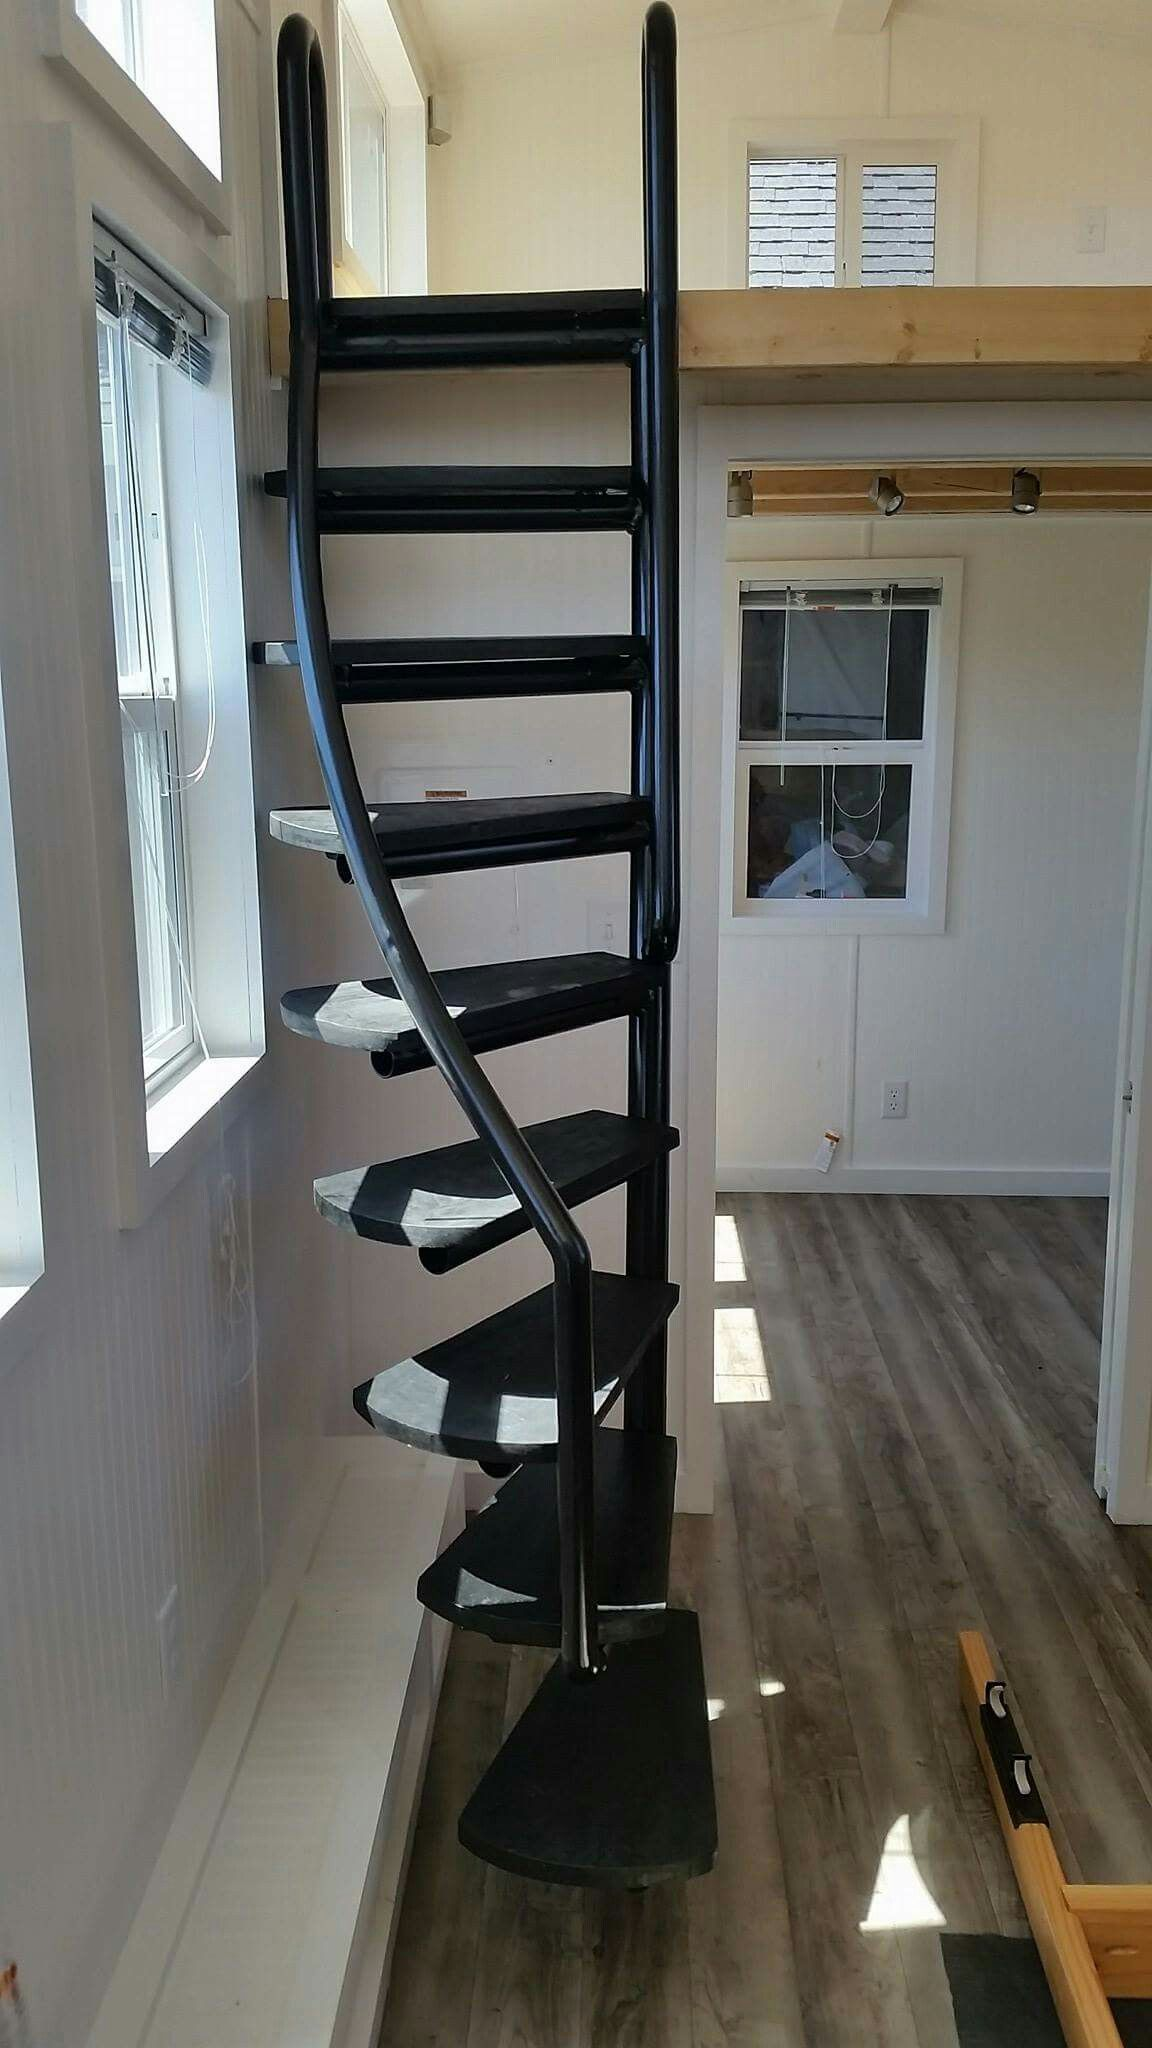 10 Crazy Tips And Tricks Attic Ideas Apartment Attic Storage Floor Simple Attic Remodel Attic Staircase Built Ins A Attic Ladder Attic Staircase Attic Remodel